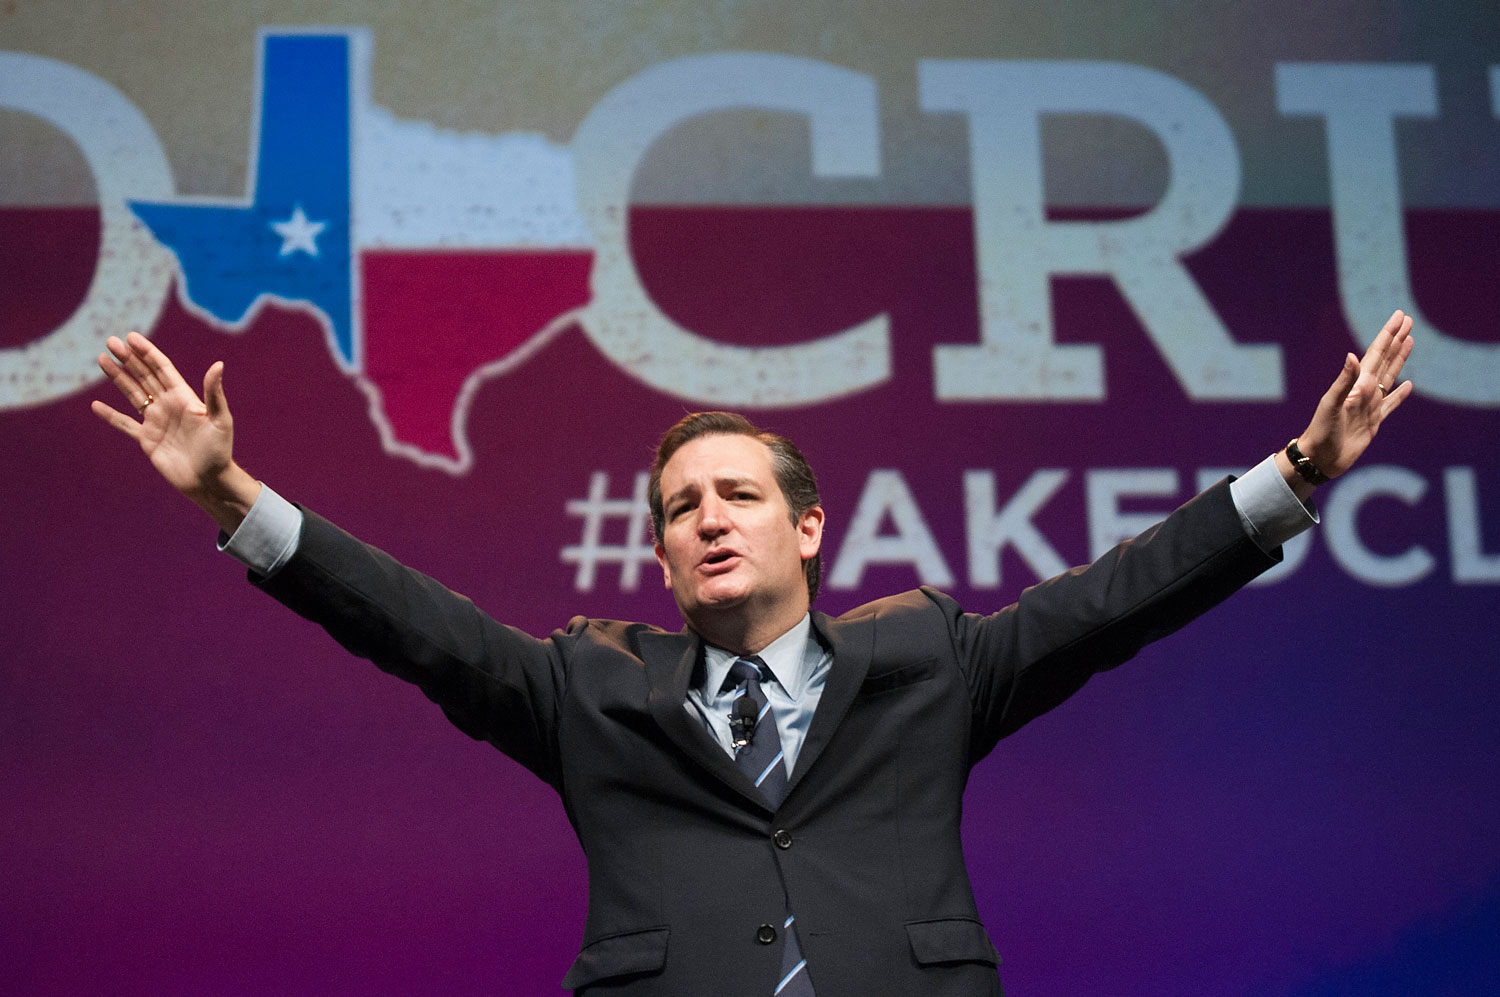 U.S. Sen. Ted Cruz address delegates at the Texas GOP Convention in Fort Worth, Texas, June 6, 2014.